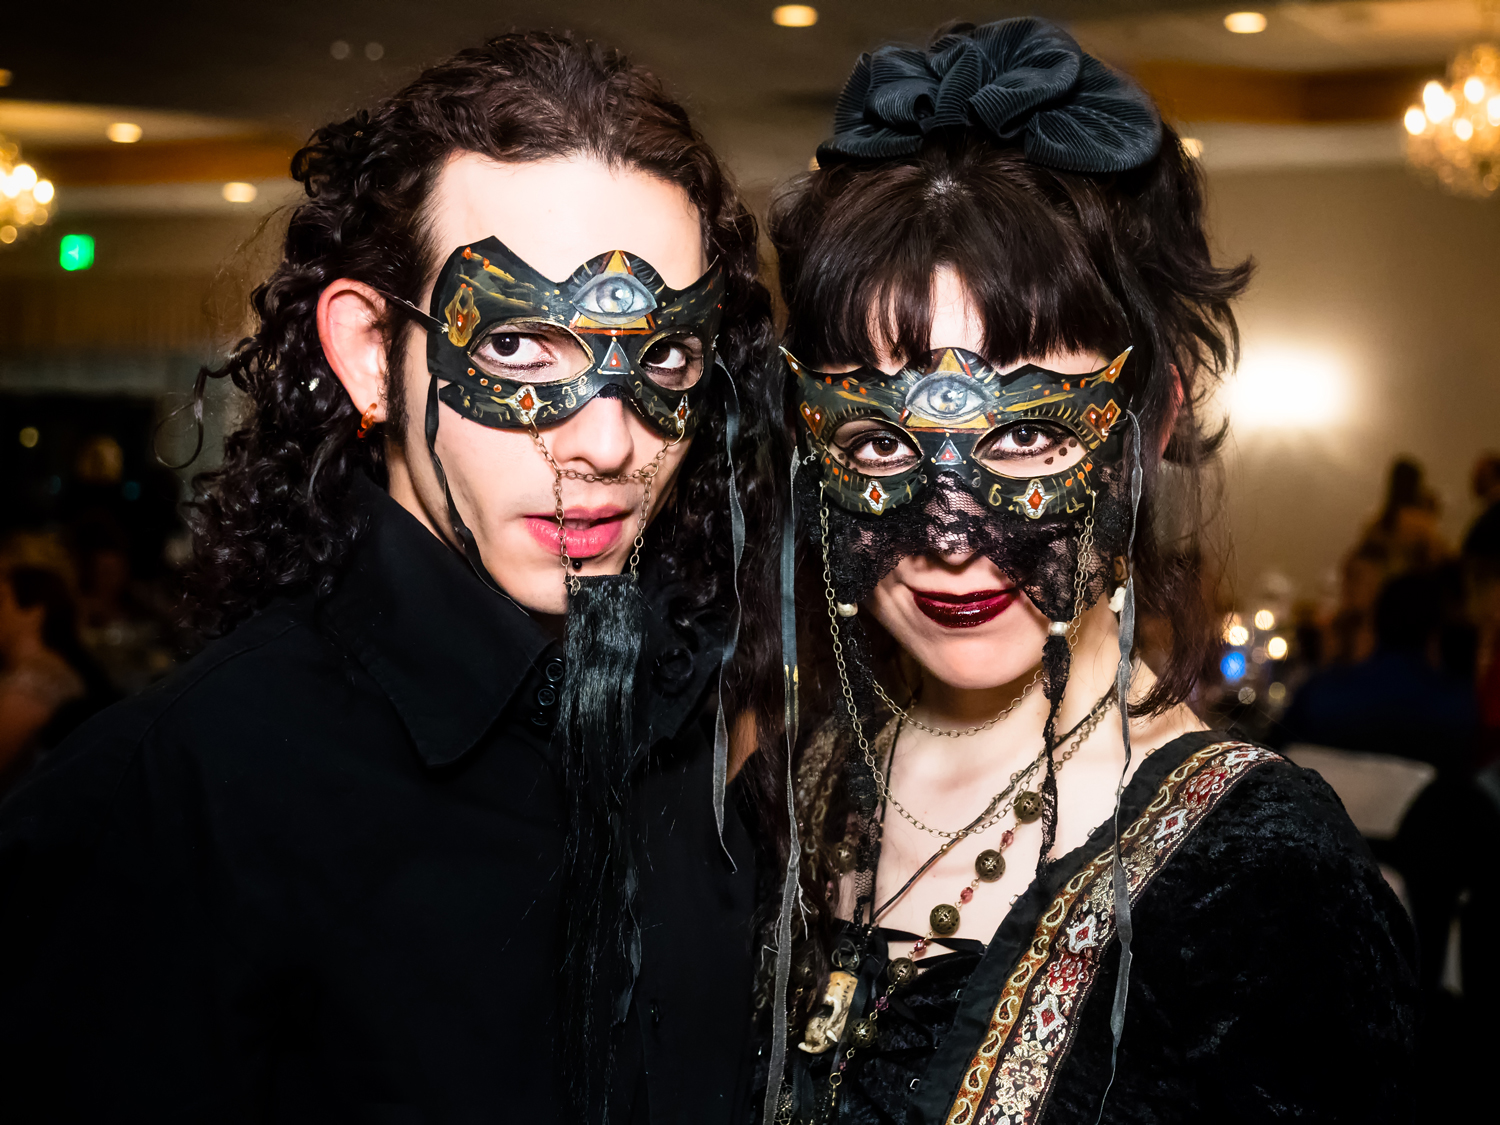 Masquerade ball special event.